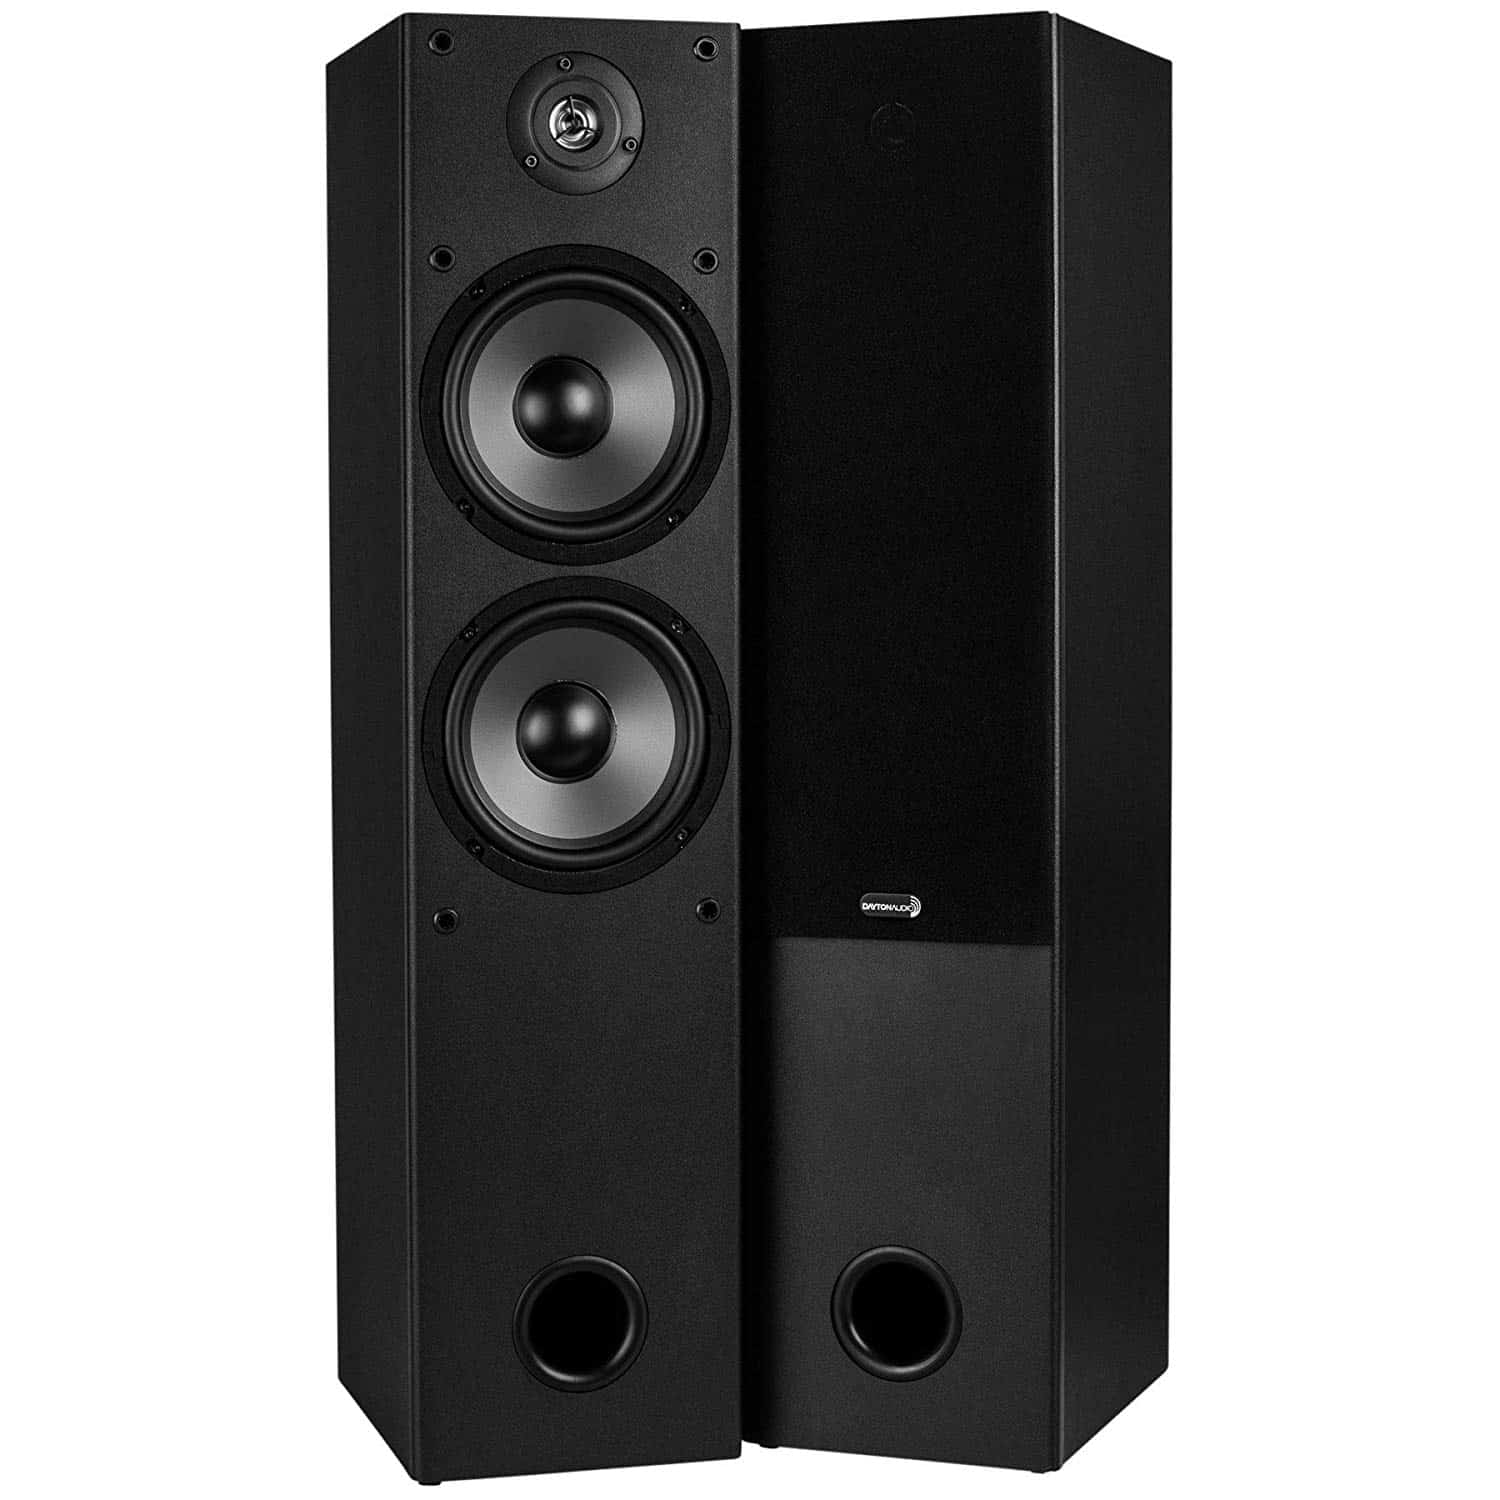 Dayton Audio T652 2-Way Tower Speaker Pair